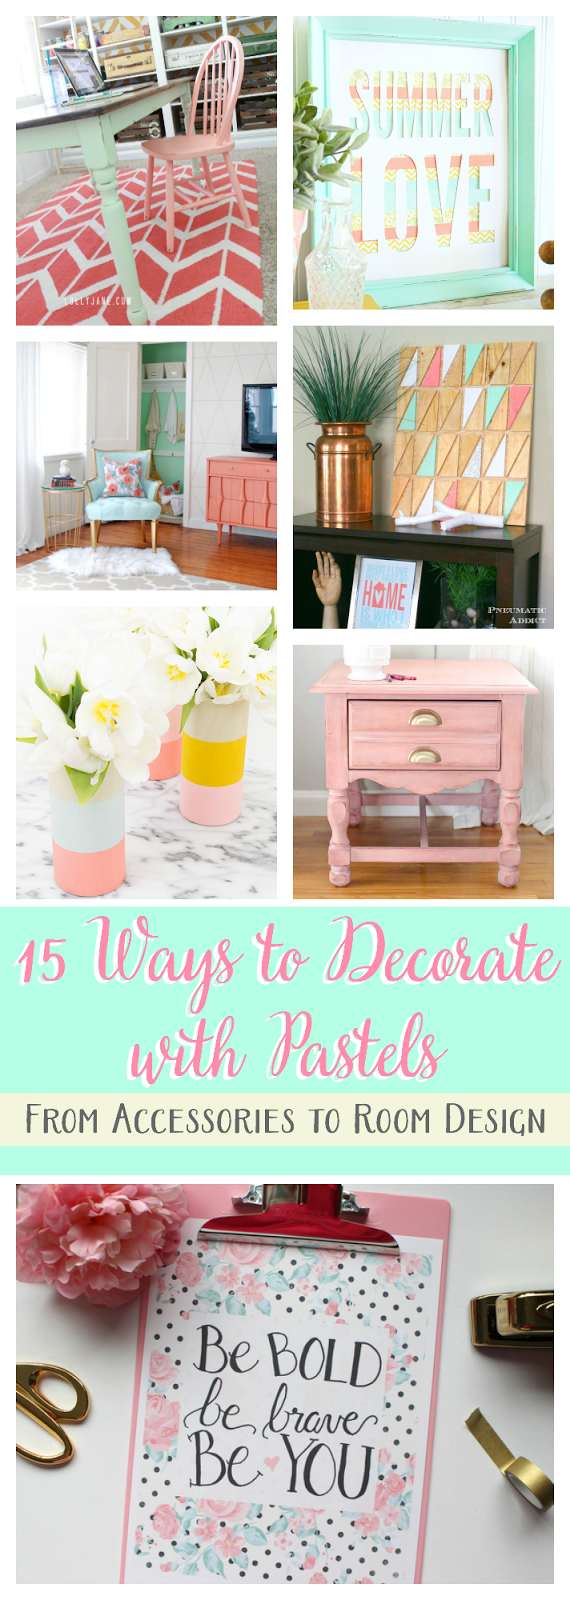 The Crafted Collective: 15 Ways to Decorate with Pastels pitterandglink.com